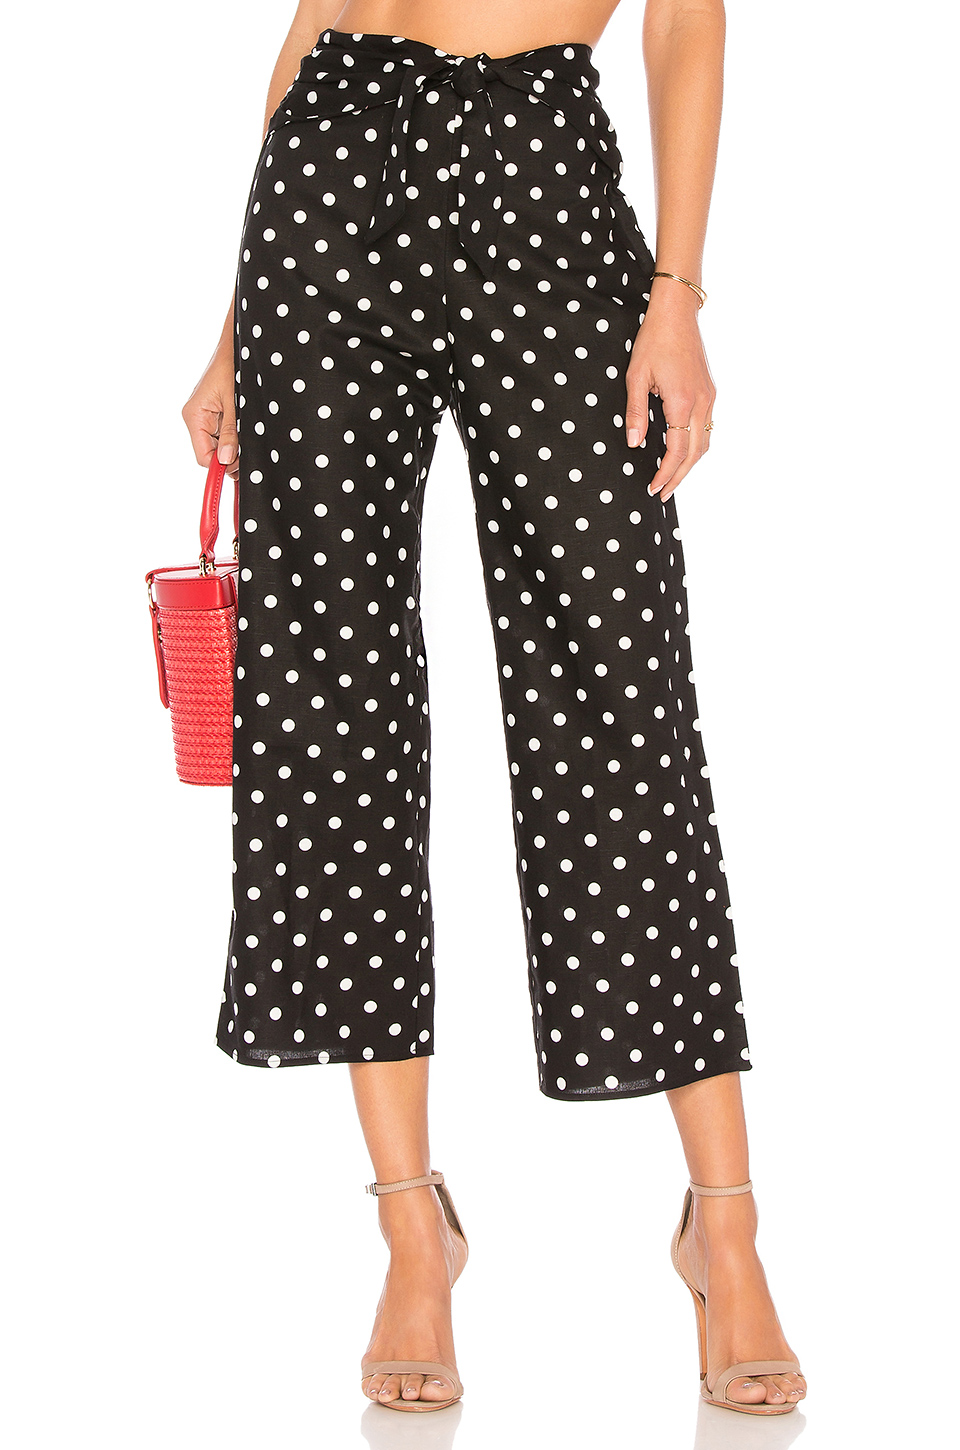 Privacy Please Nolana Pant in Black Dot